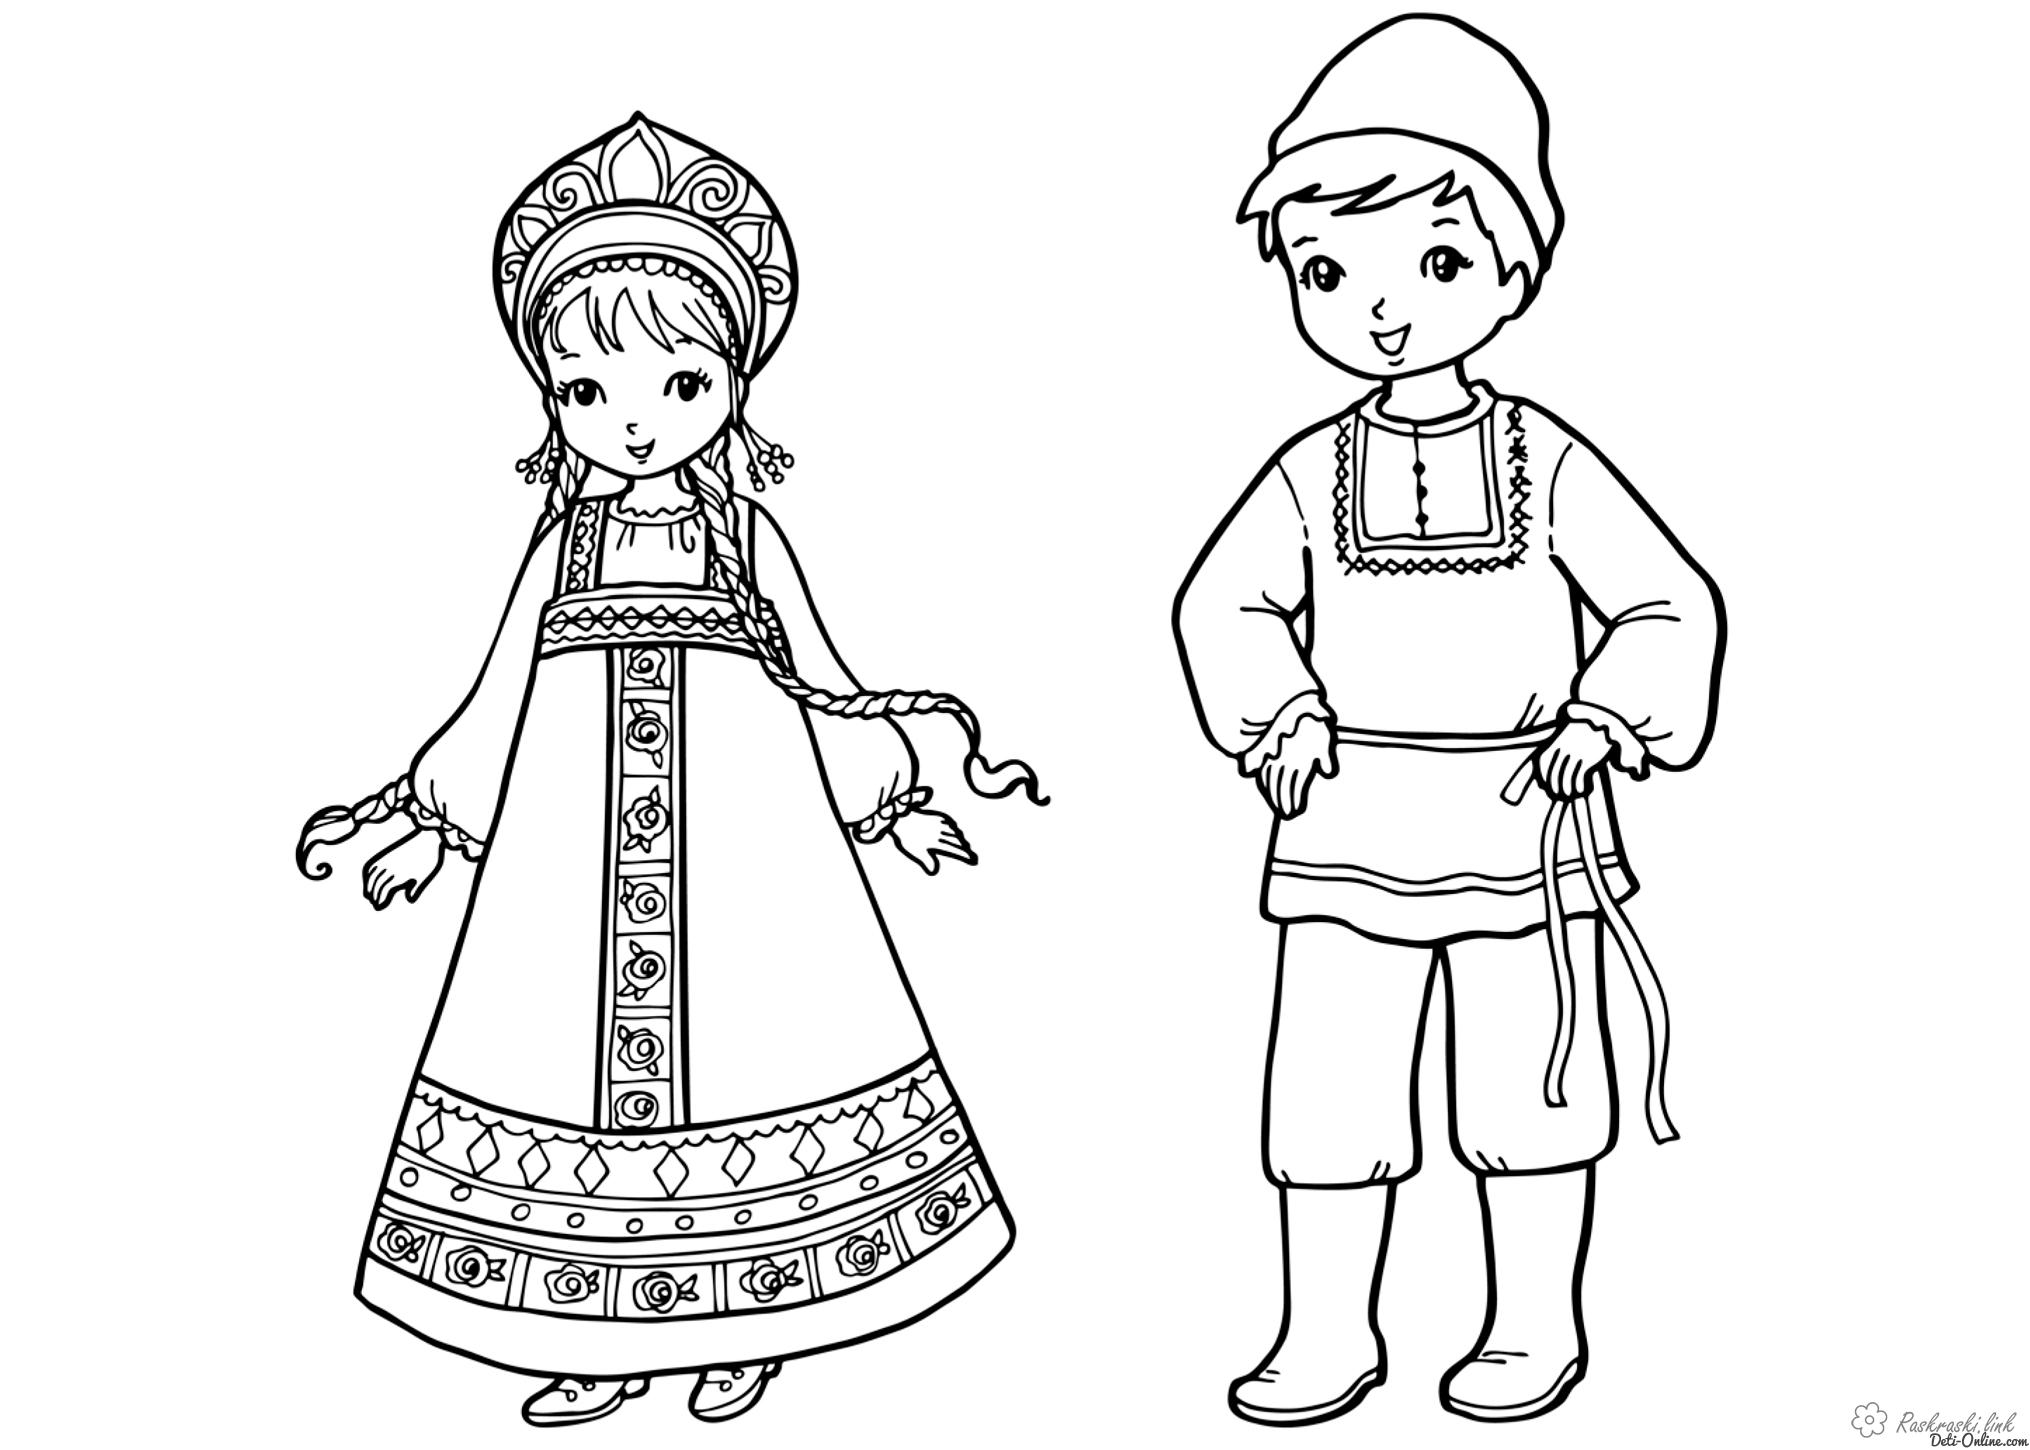 Coloring world Children in national costumes coloring pages